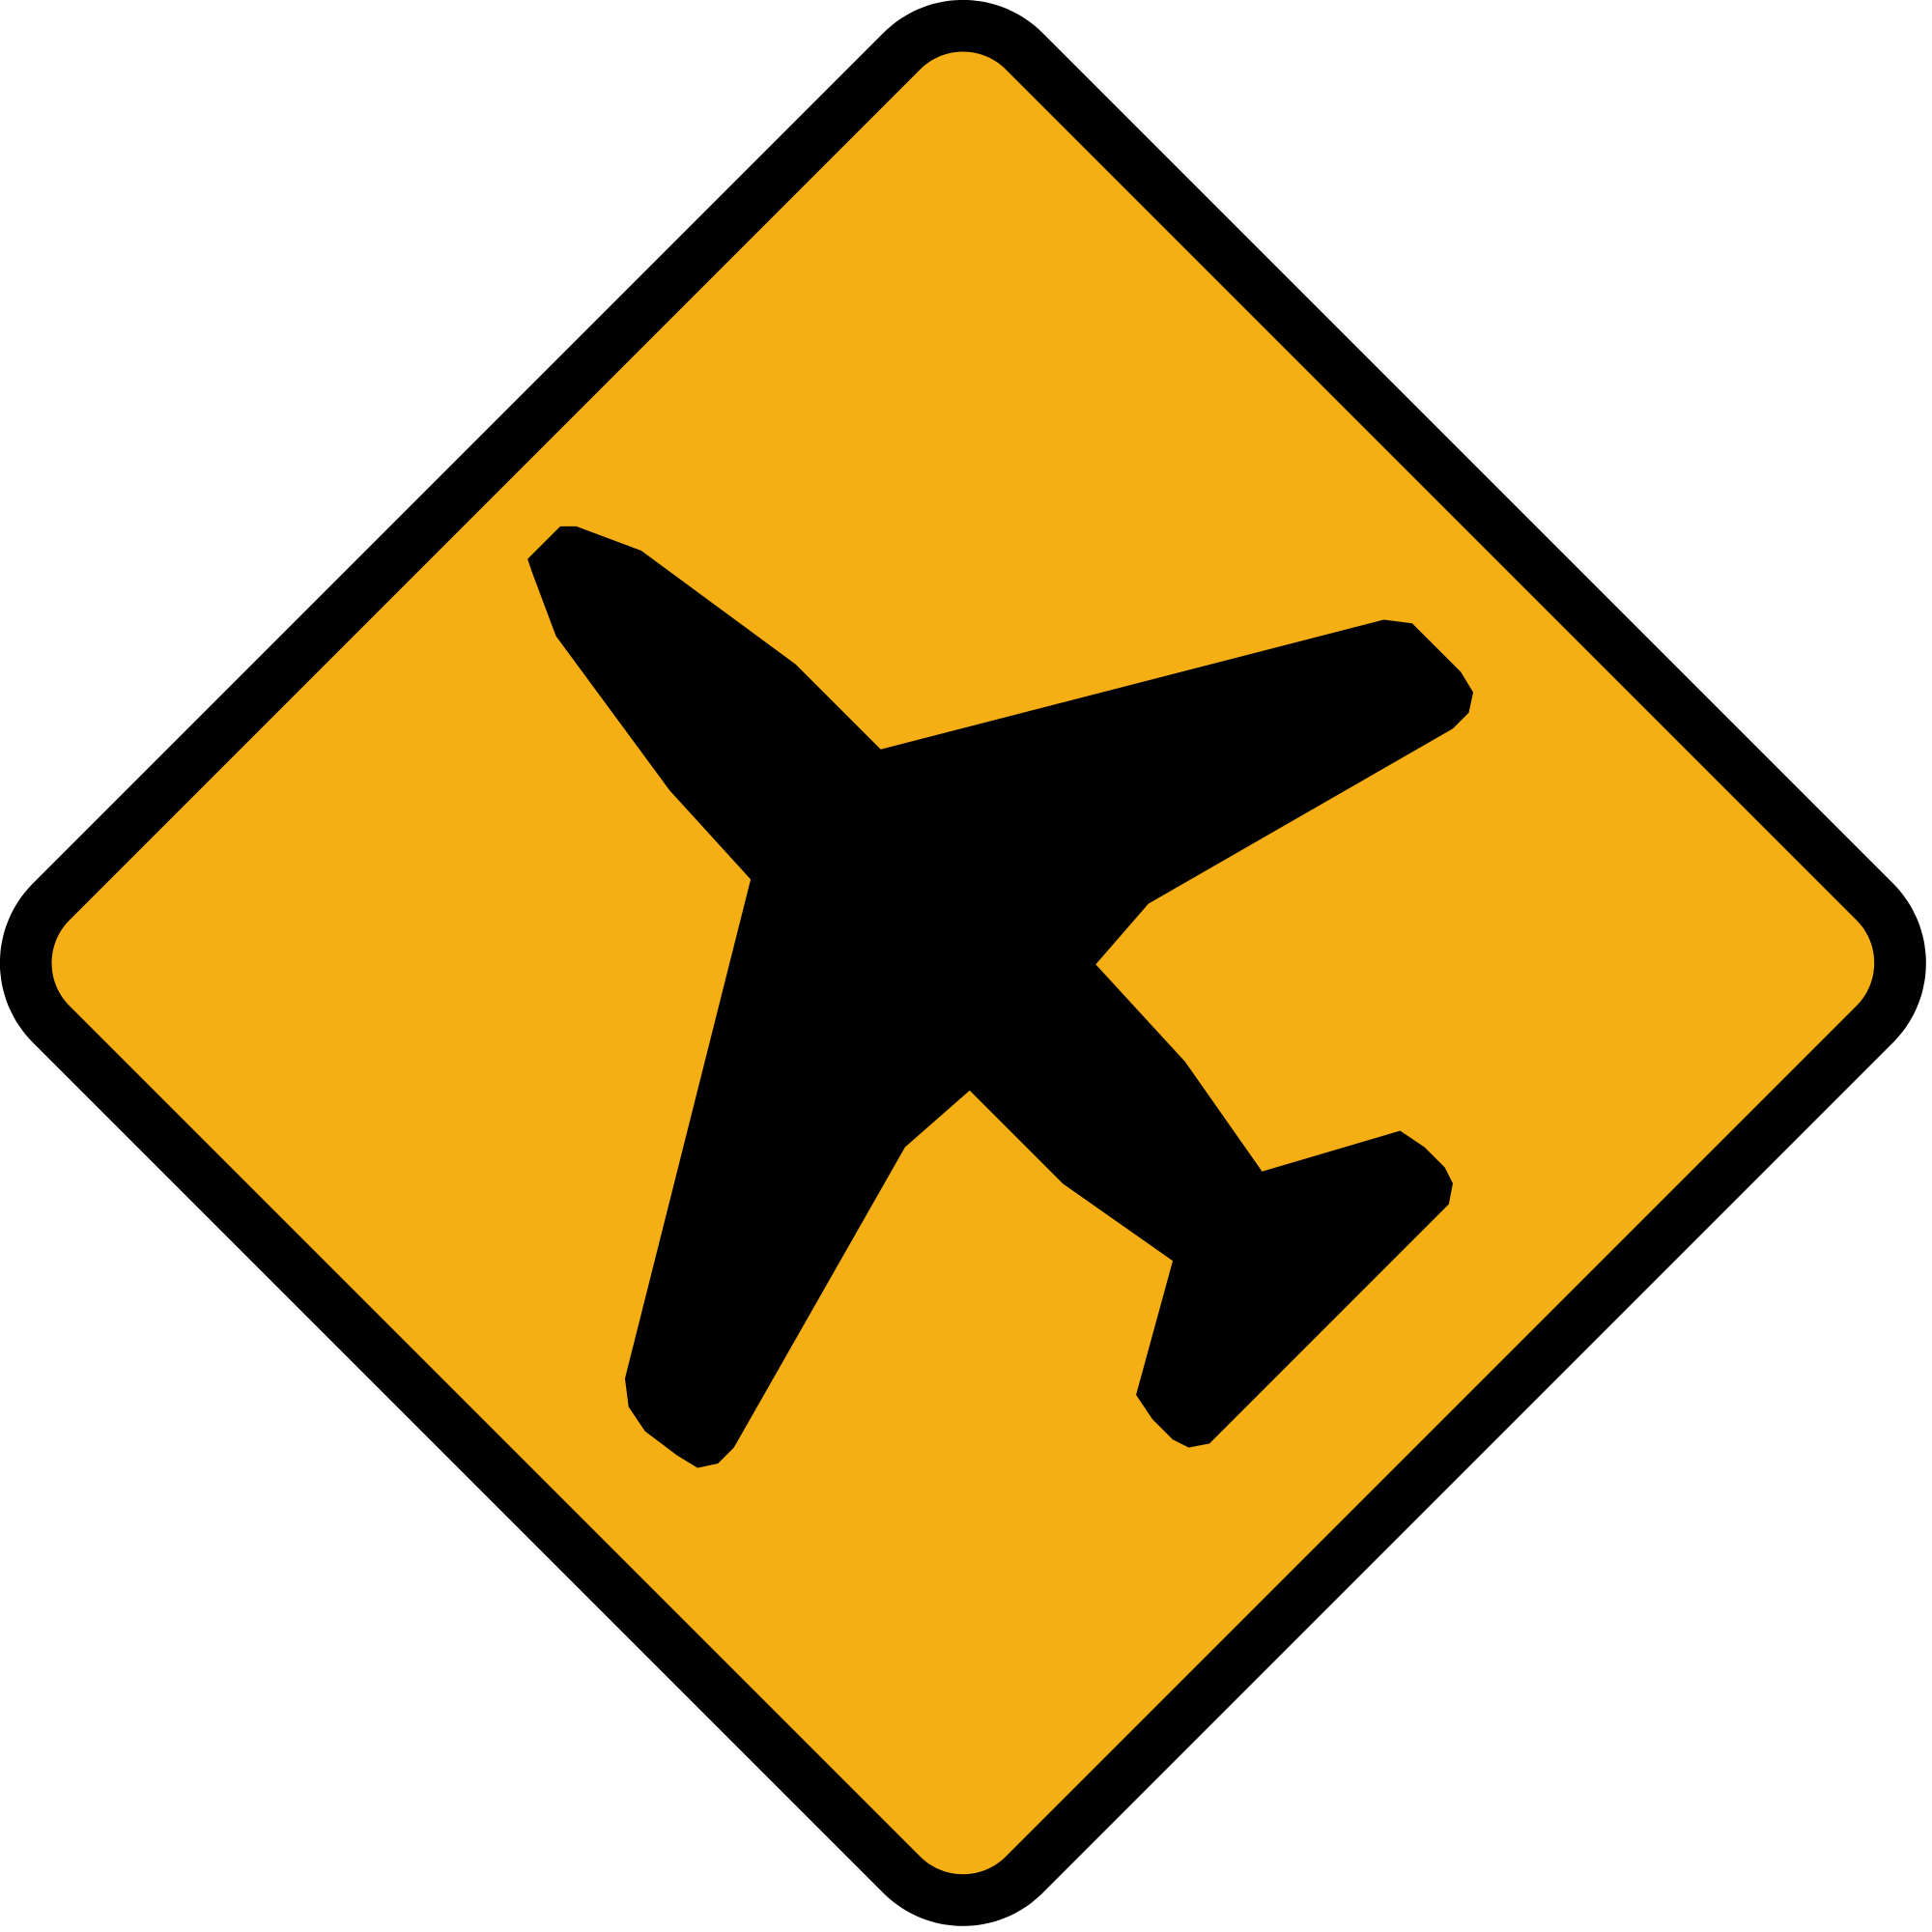 File:Diamond road sign low flying aircraft.svg.